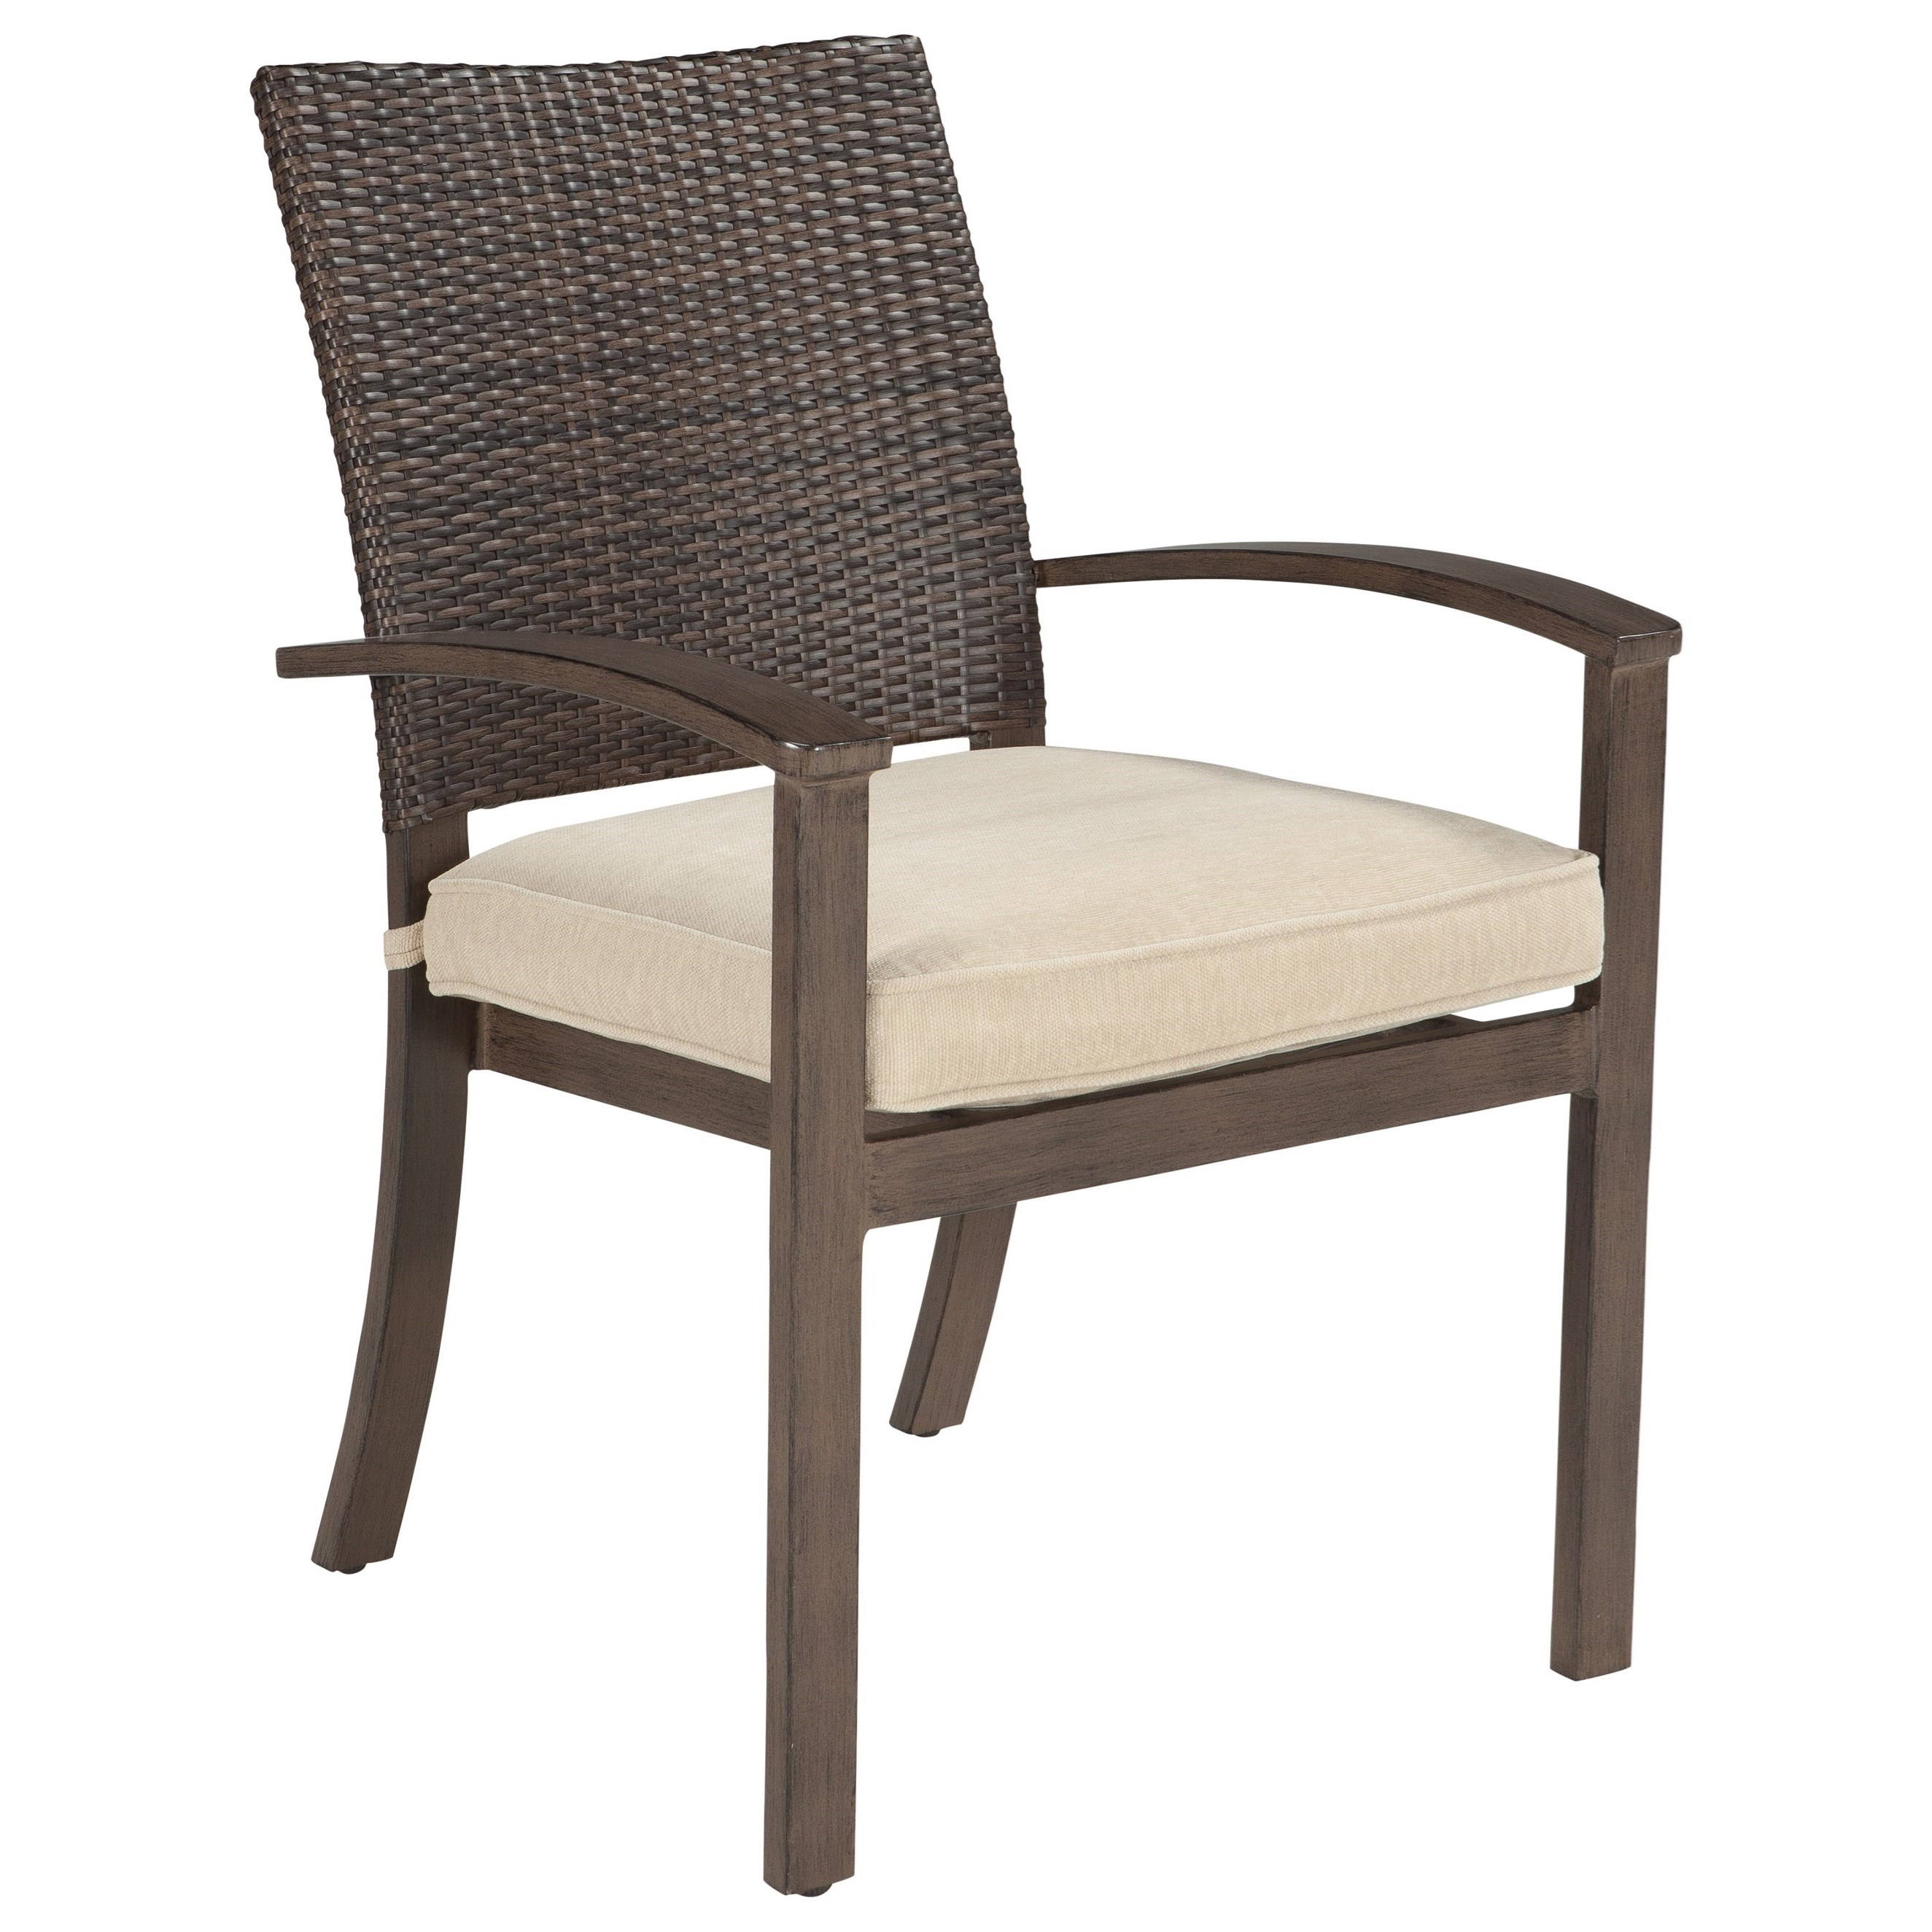 Ashley Signature Design Moresdale Set of 4 Outdoor Chairs with Cushion Dunk